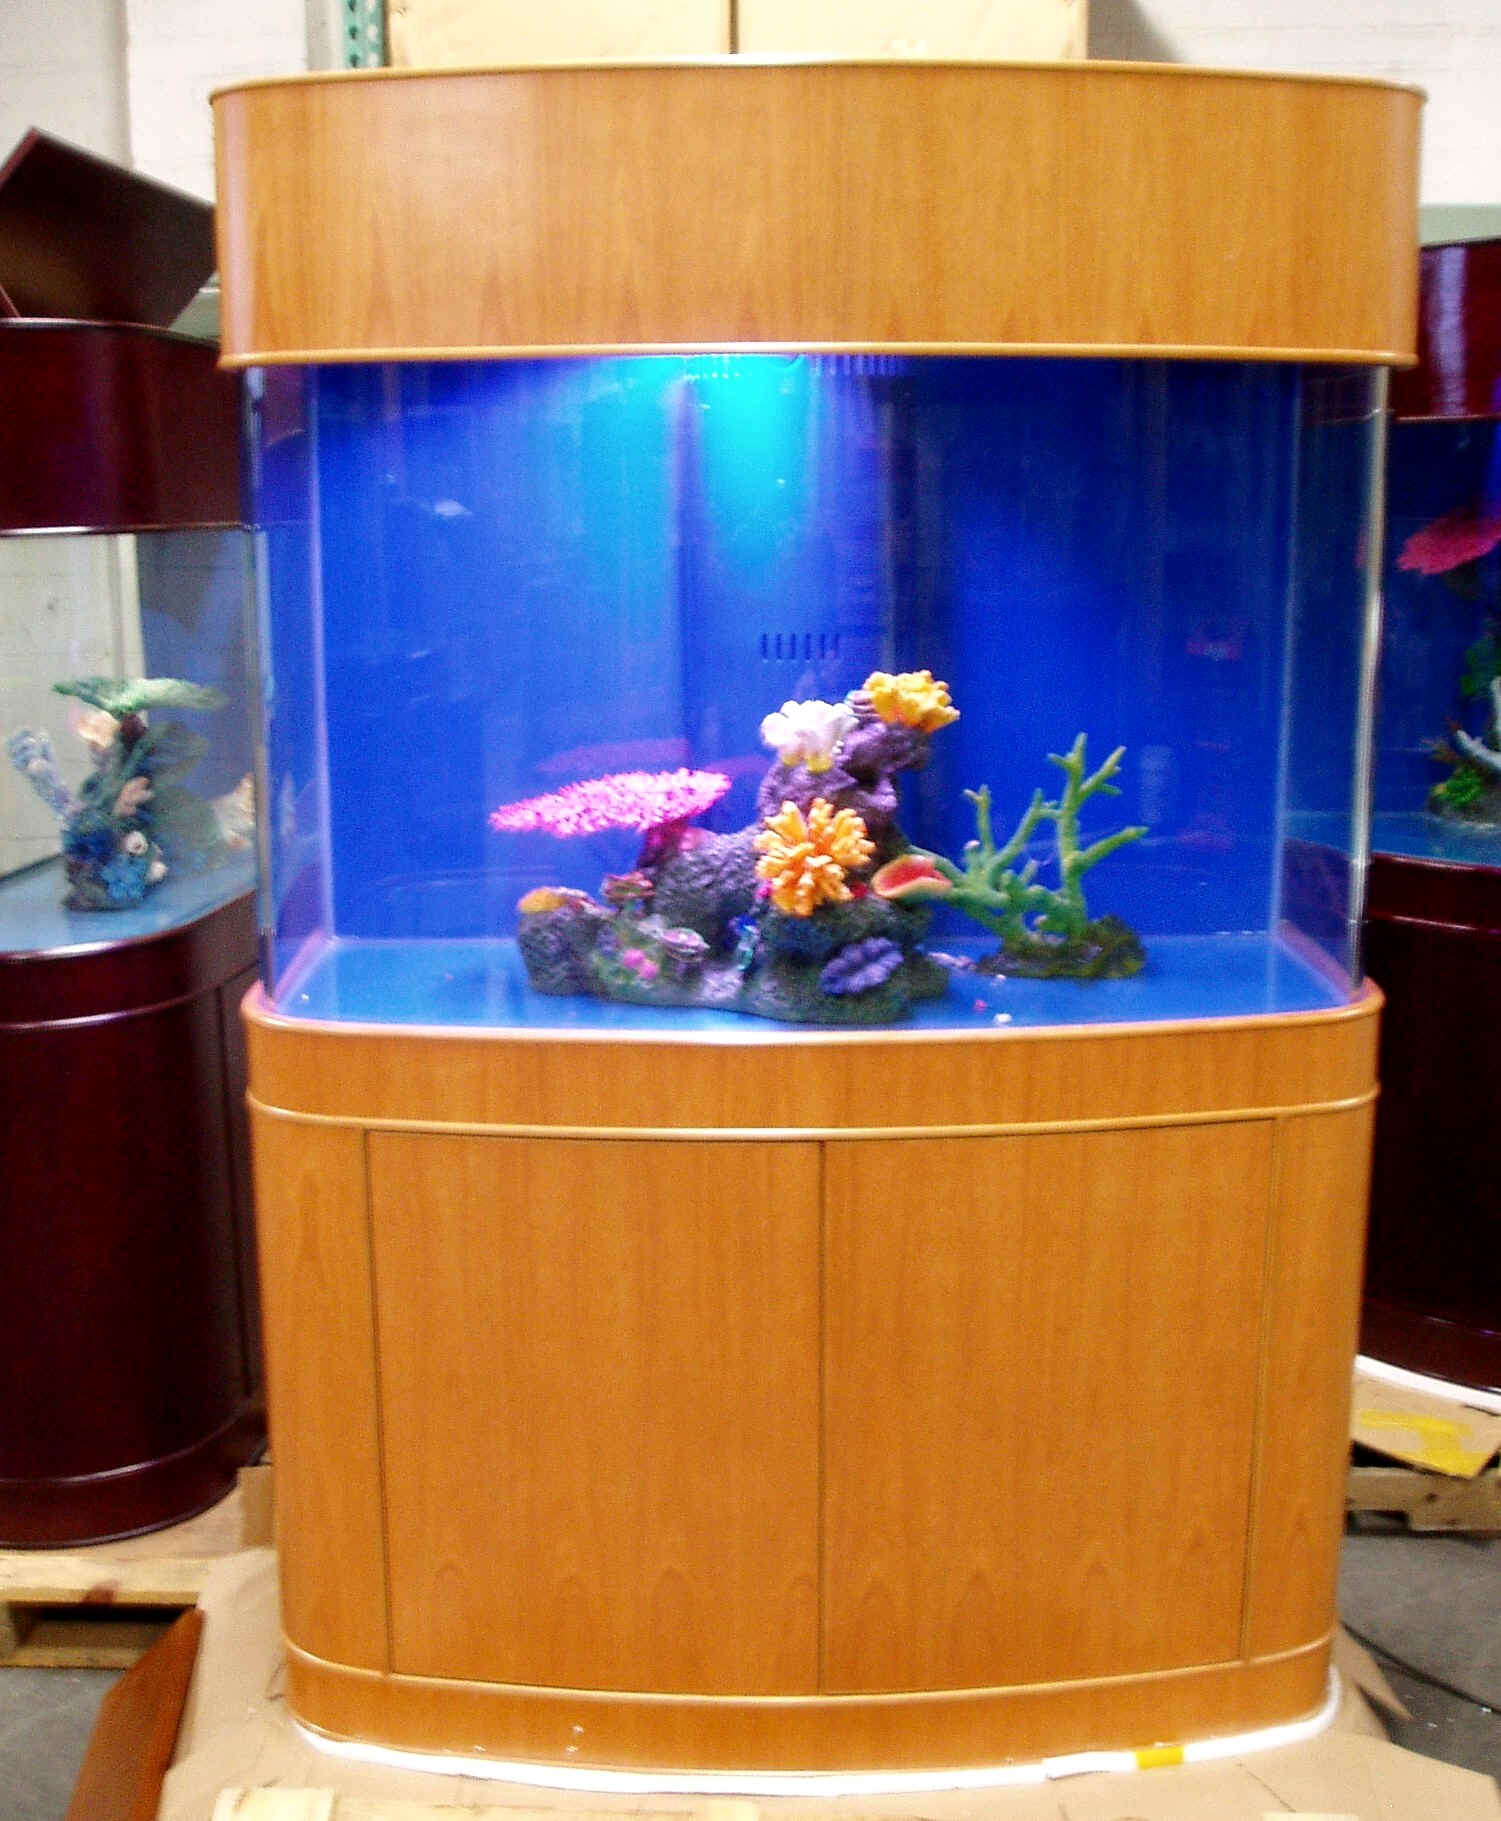 75 Gallon Bow Front Aquarium http://www.4fishtank.com/OV%20bow.htm